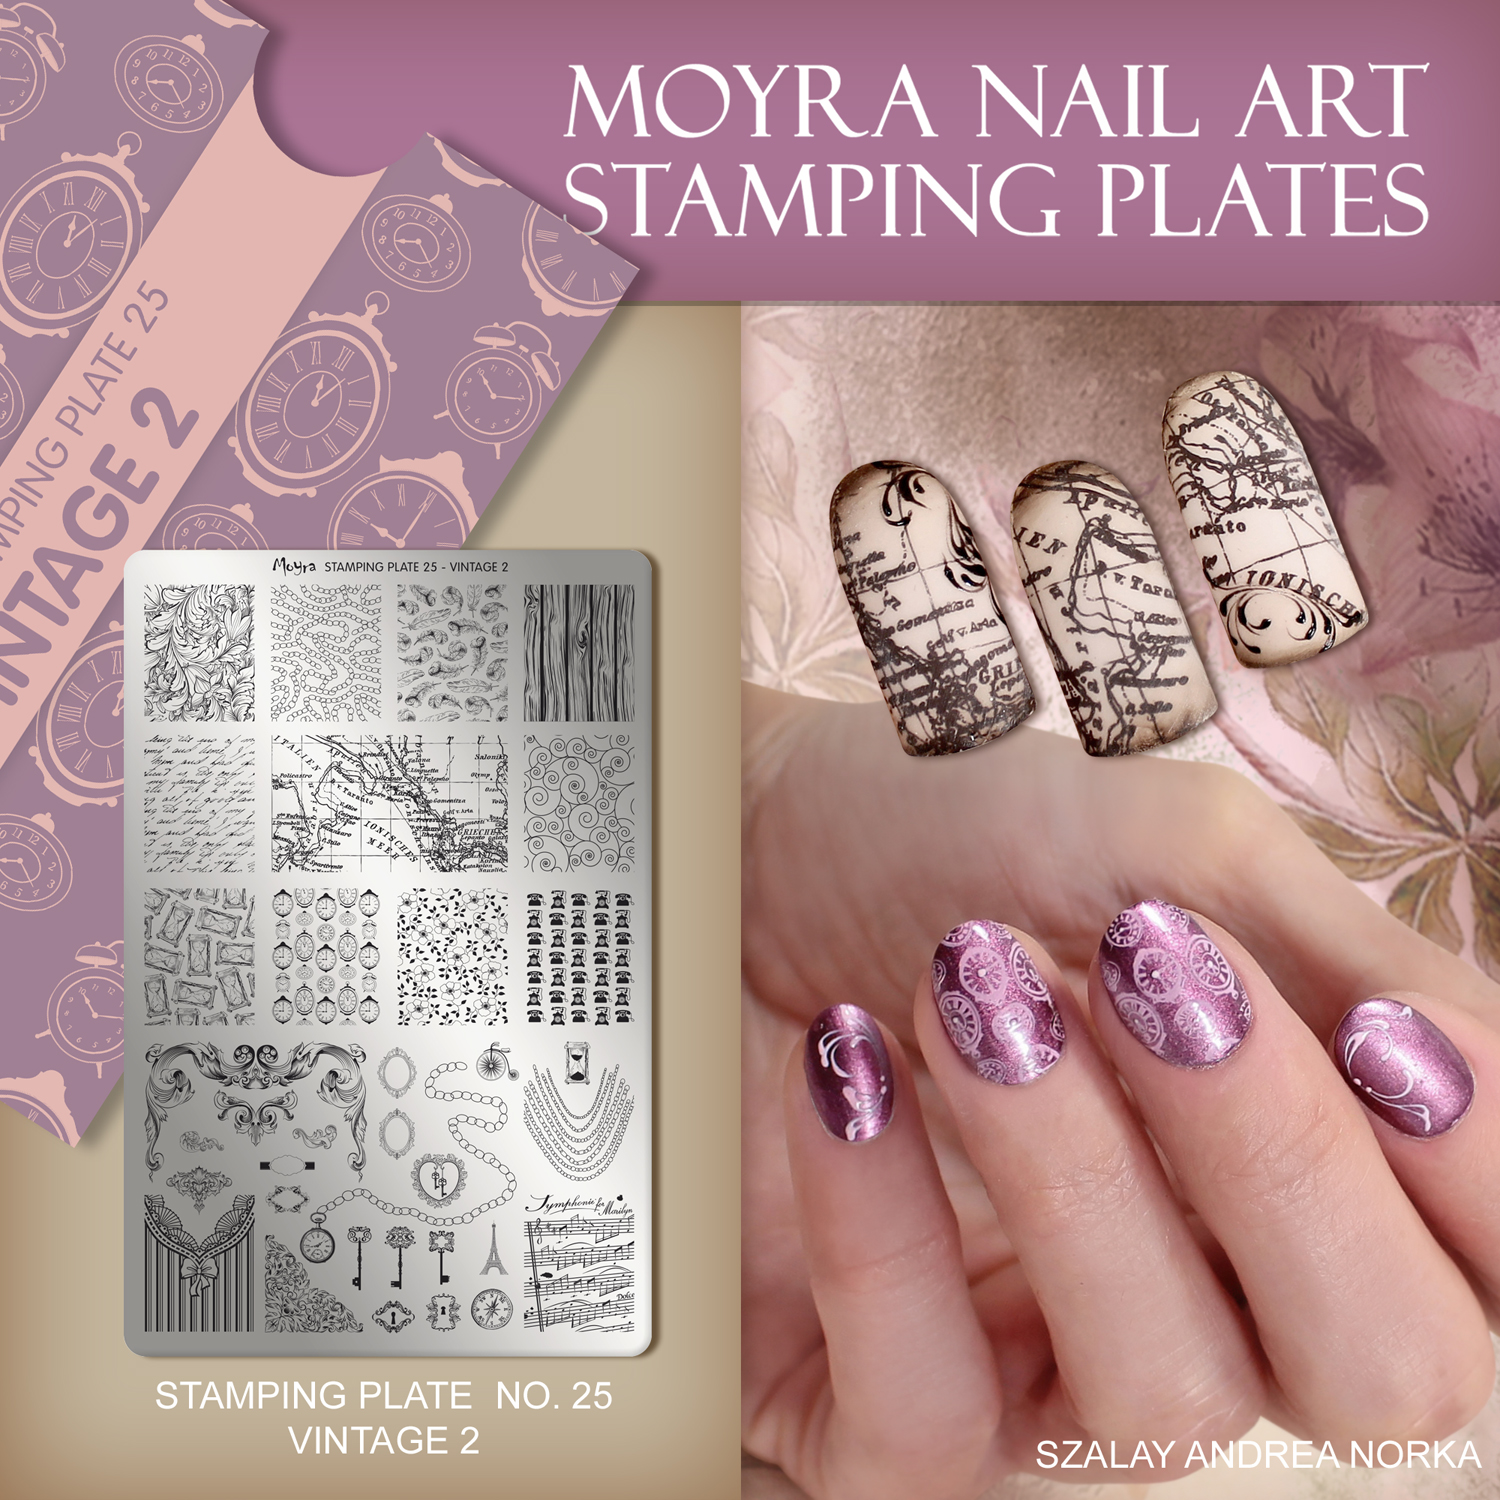 Nail design with Moyra stamping plate No. 25 Vintage 2